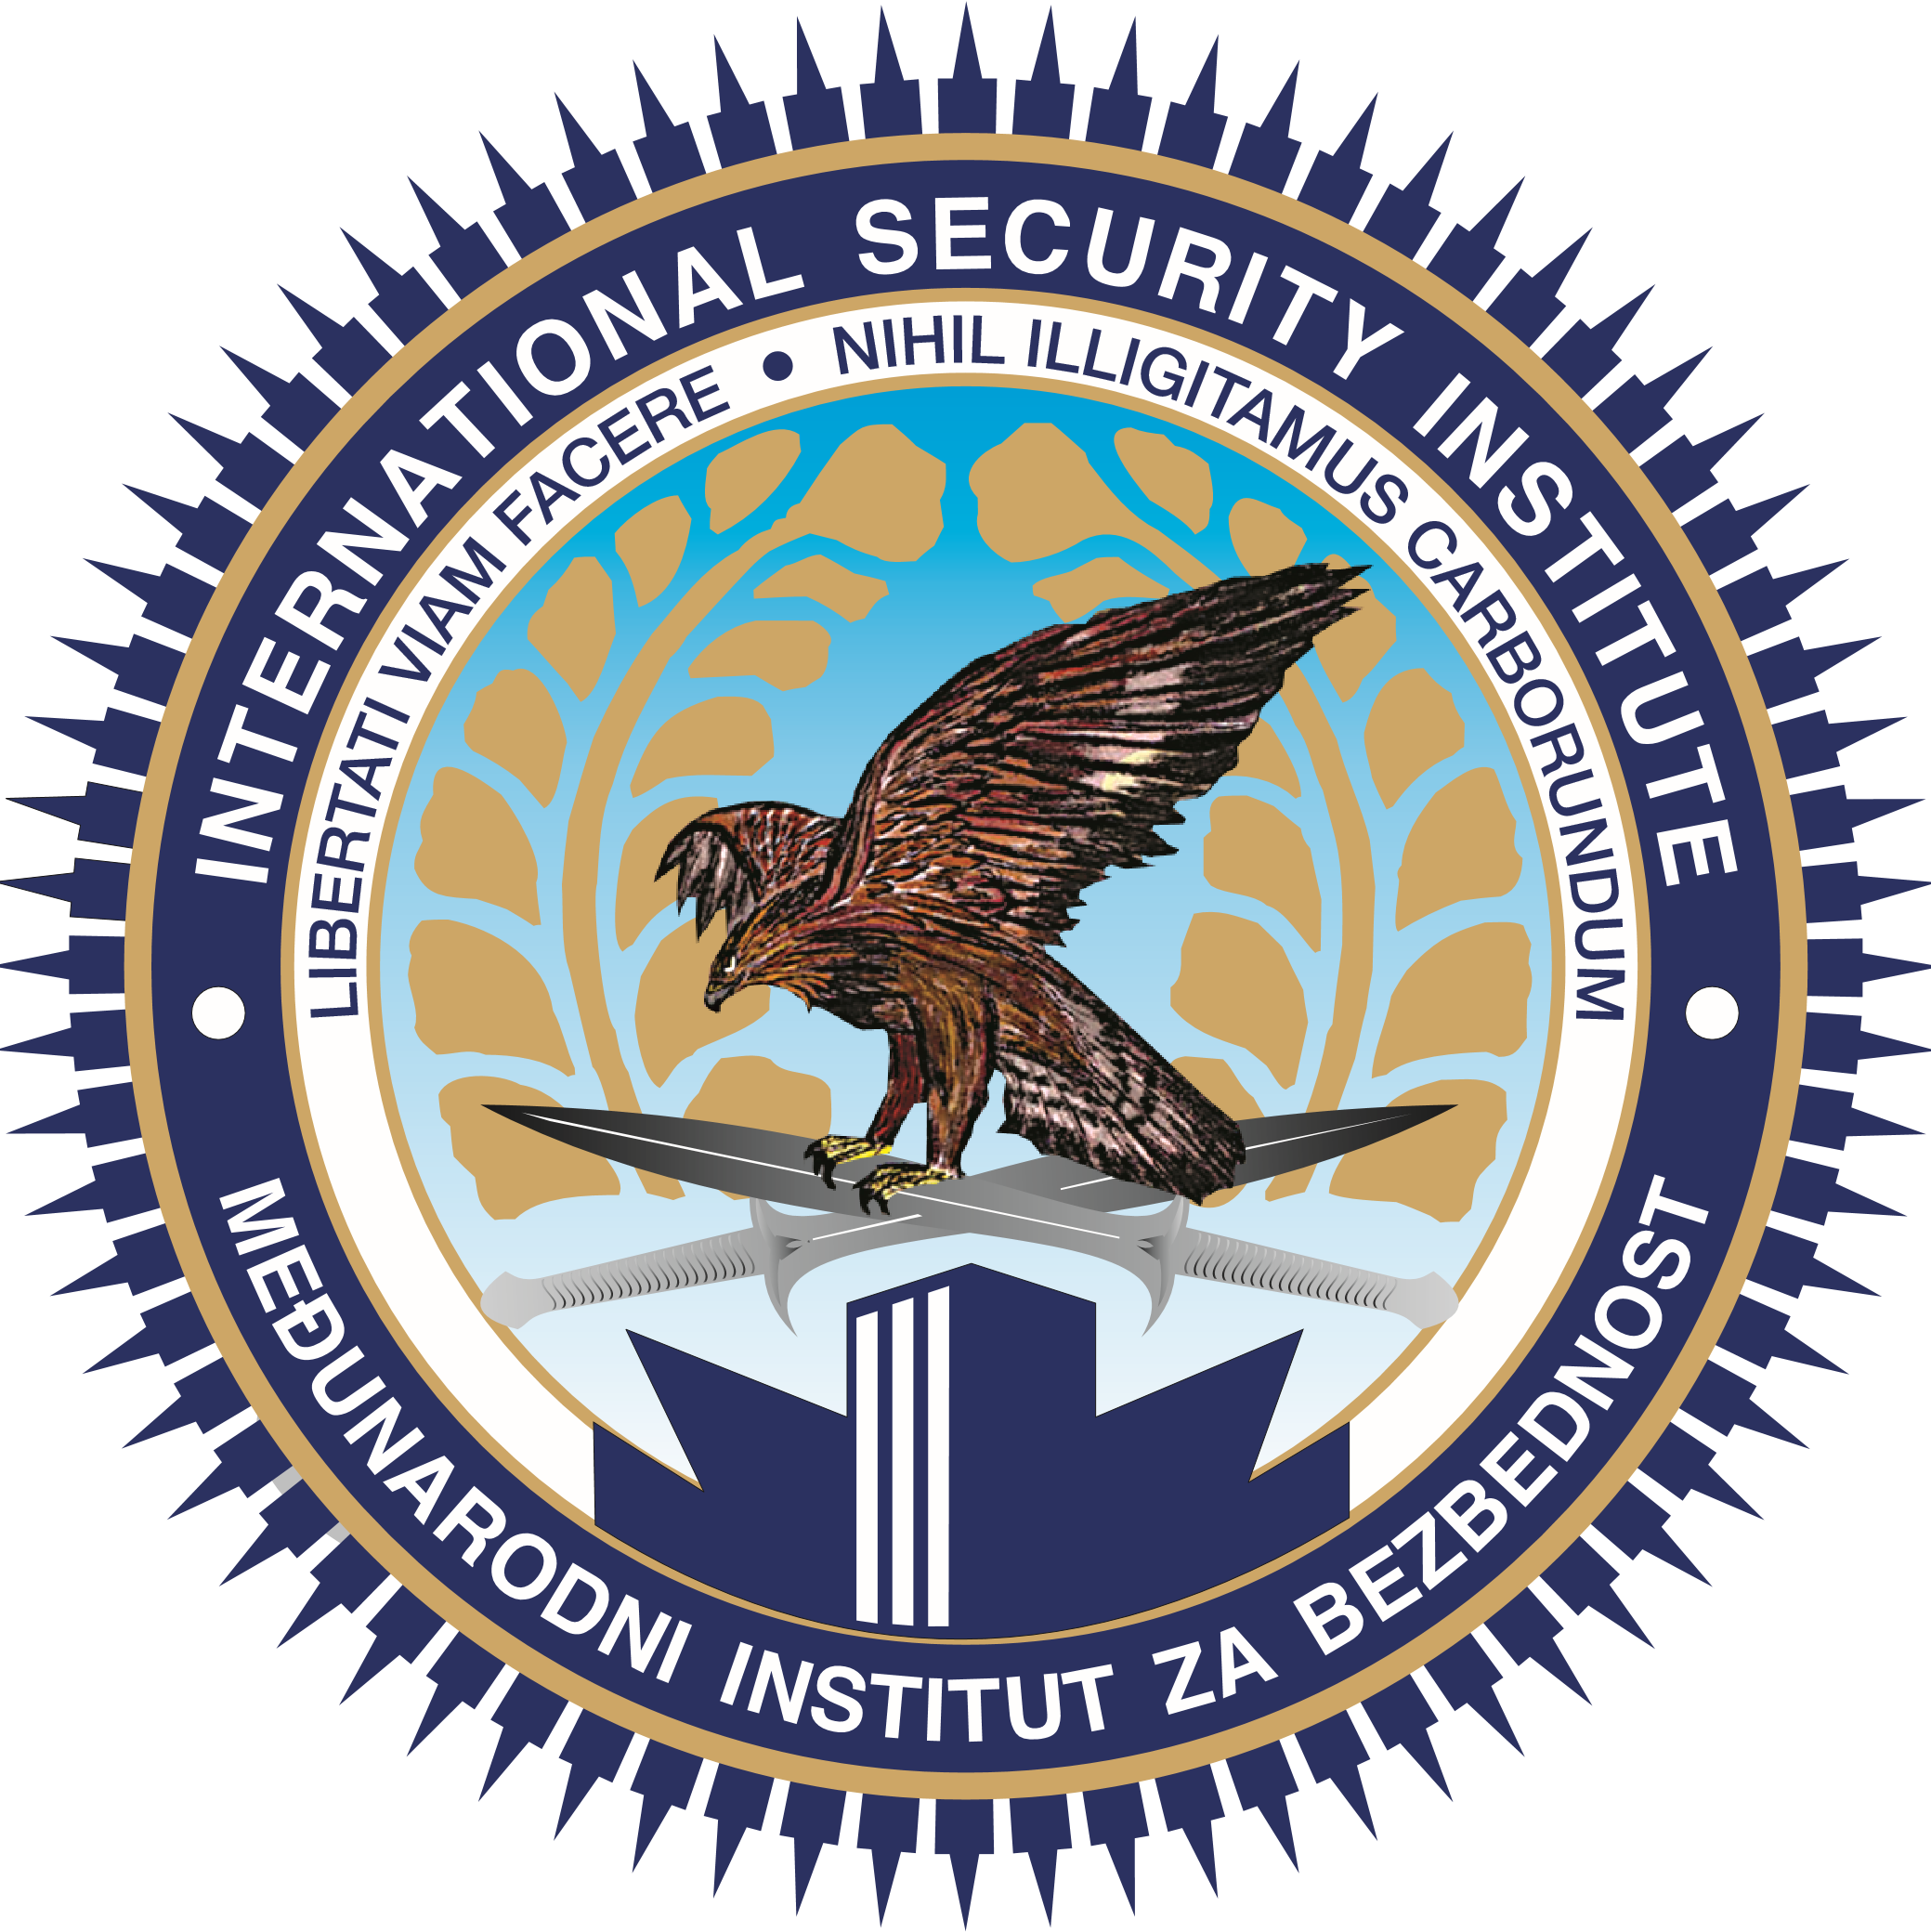 International Security Institute